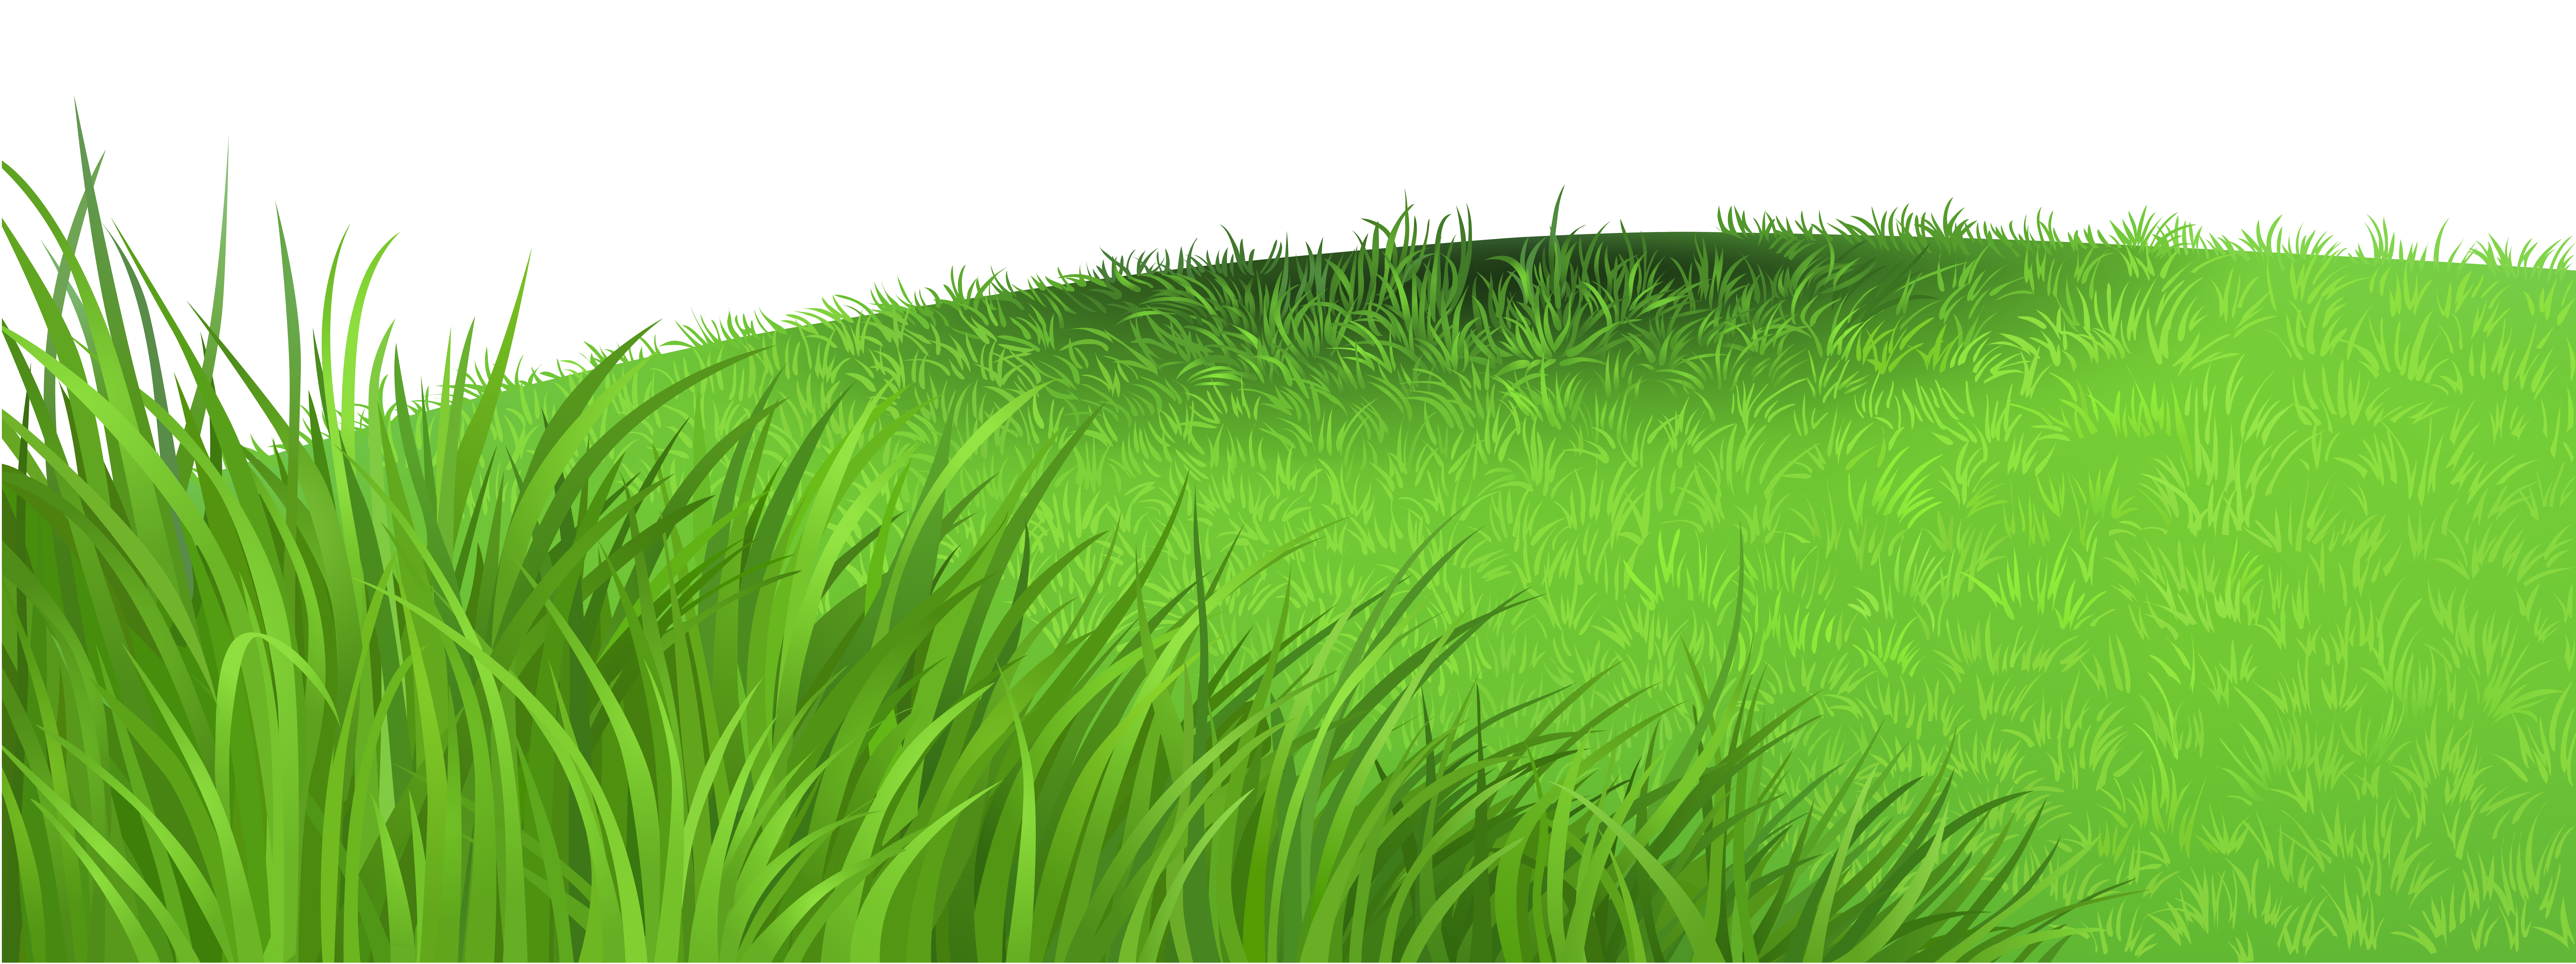 medium resolution of clipart free grass high quality images photo art texture arts